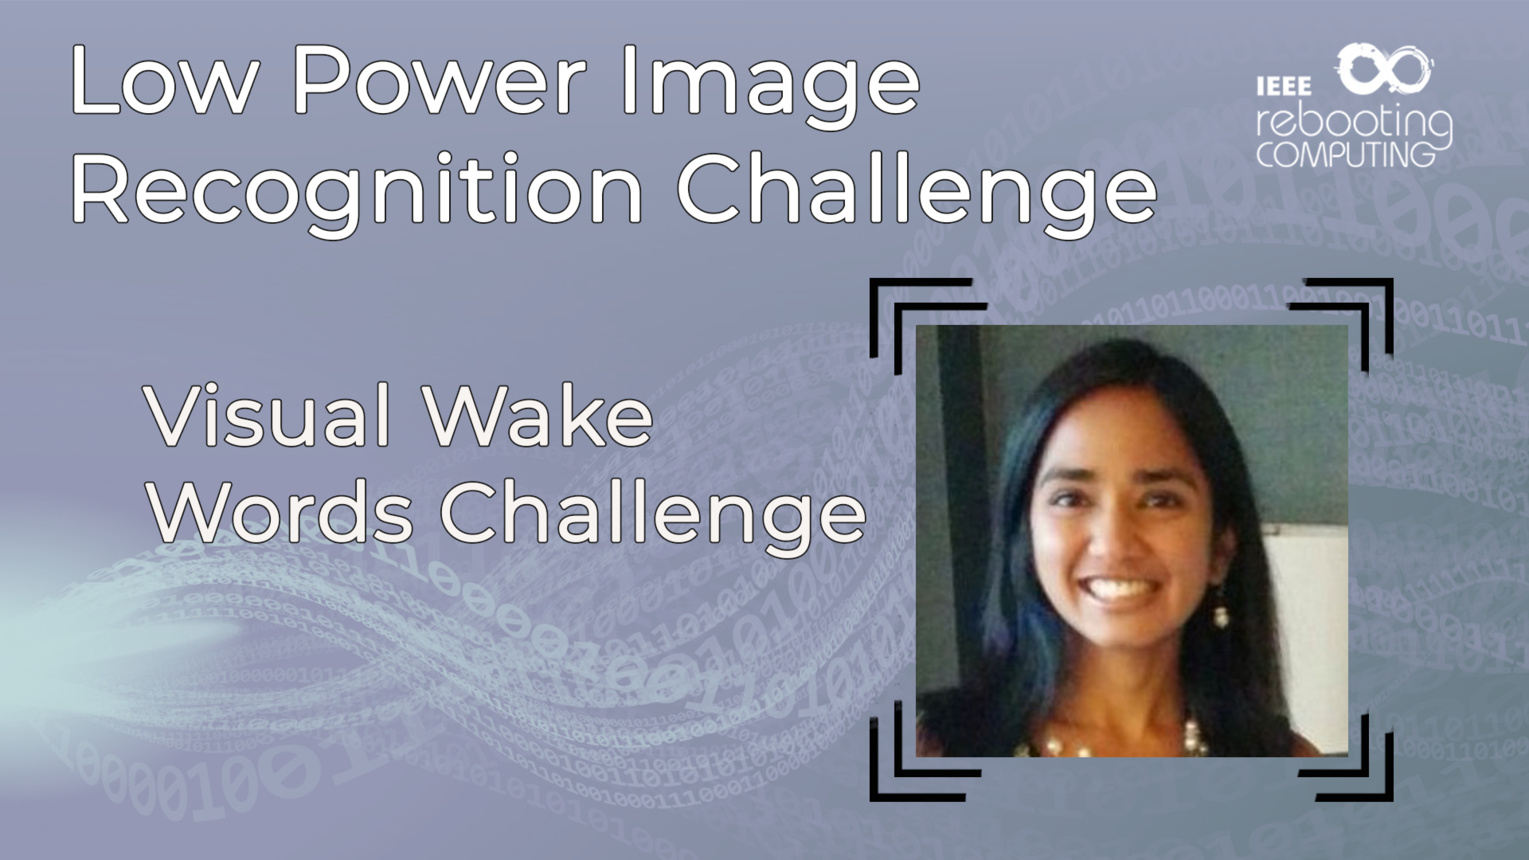 Visual Wake Words Challenge - Aakanksha Chowdhery - LPIRC 2019